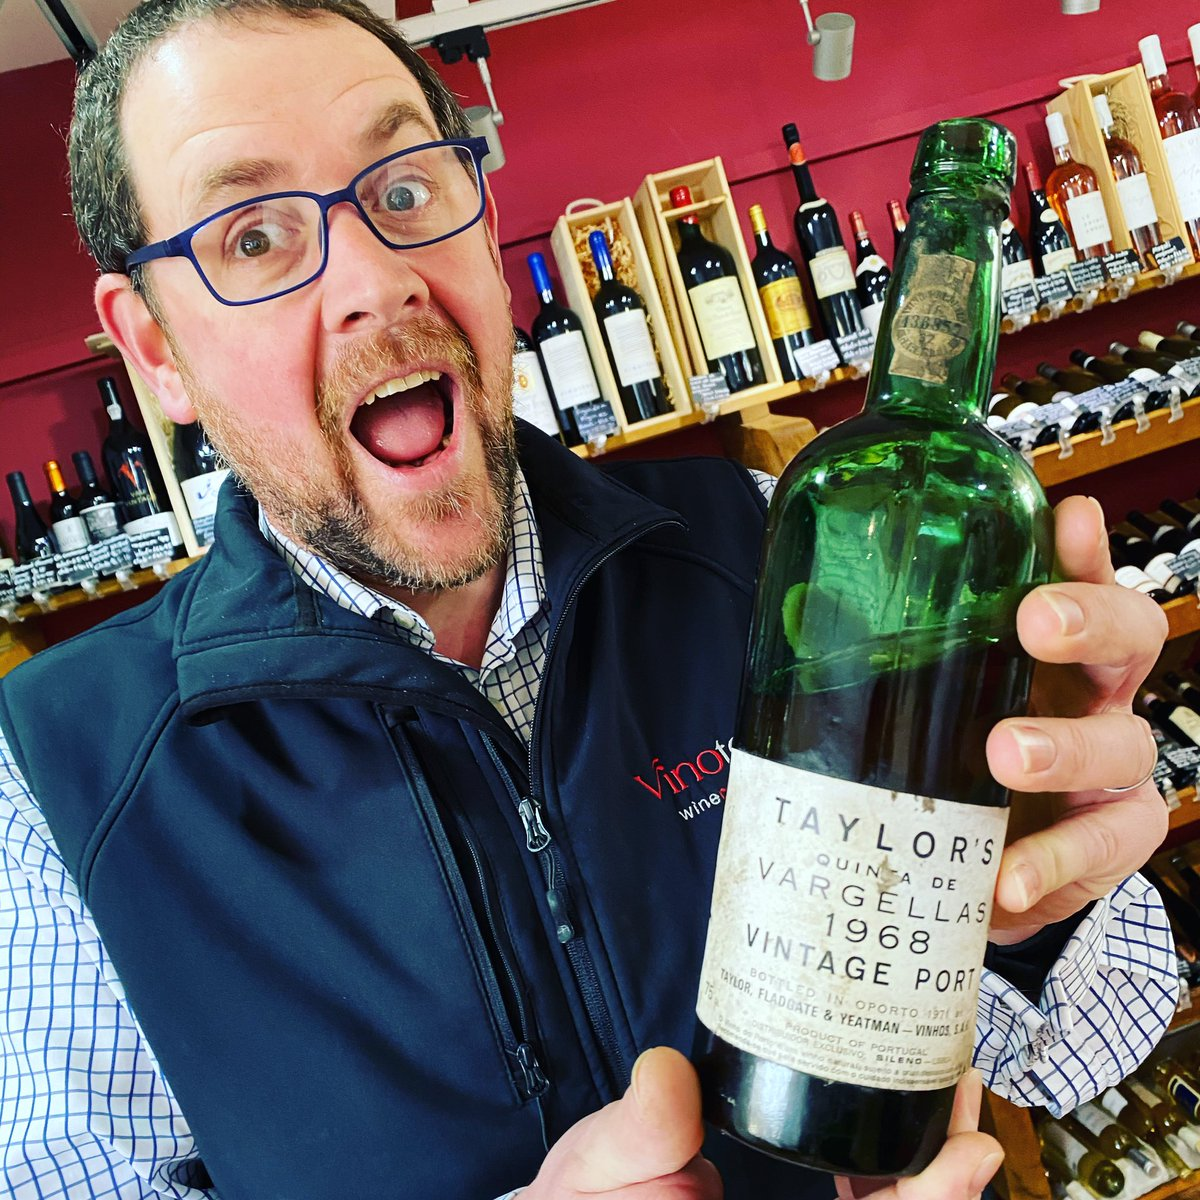 Which one of these two are older - Andy or the #Taylors1968? We opened the port yesterday and it was delicious! Pop into the shop if you want to have a taste. #tryjanuary #vintageport #vintage #oldkingcole #howoldisandy #likelikelike pic.twitter.com/DWTarU9B5W